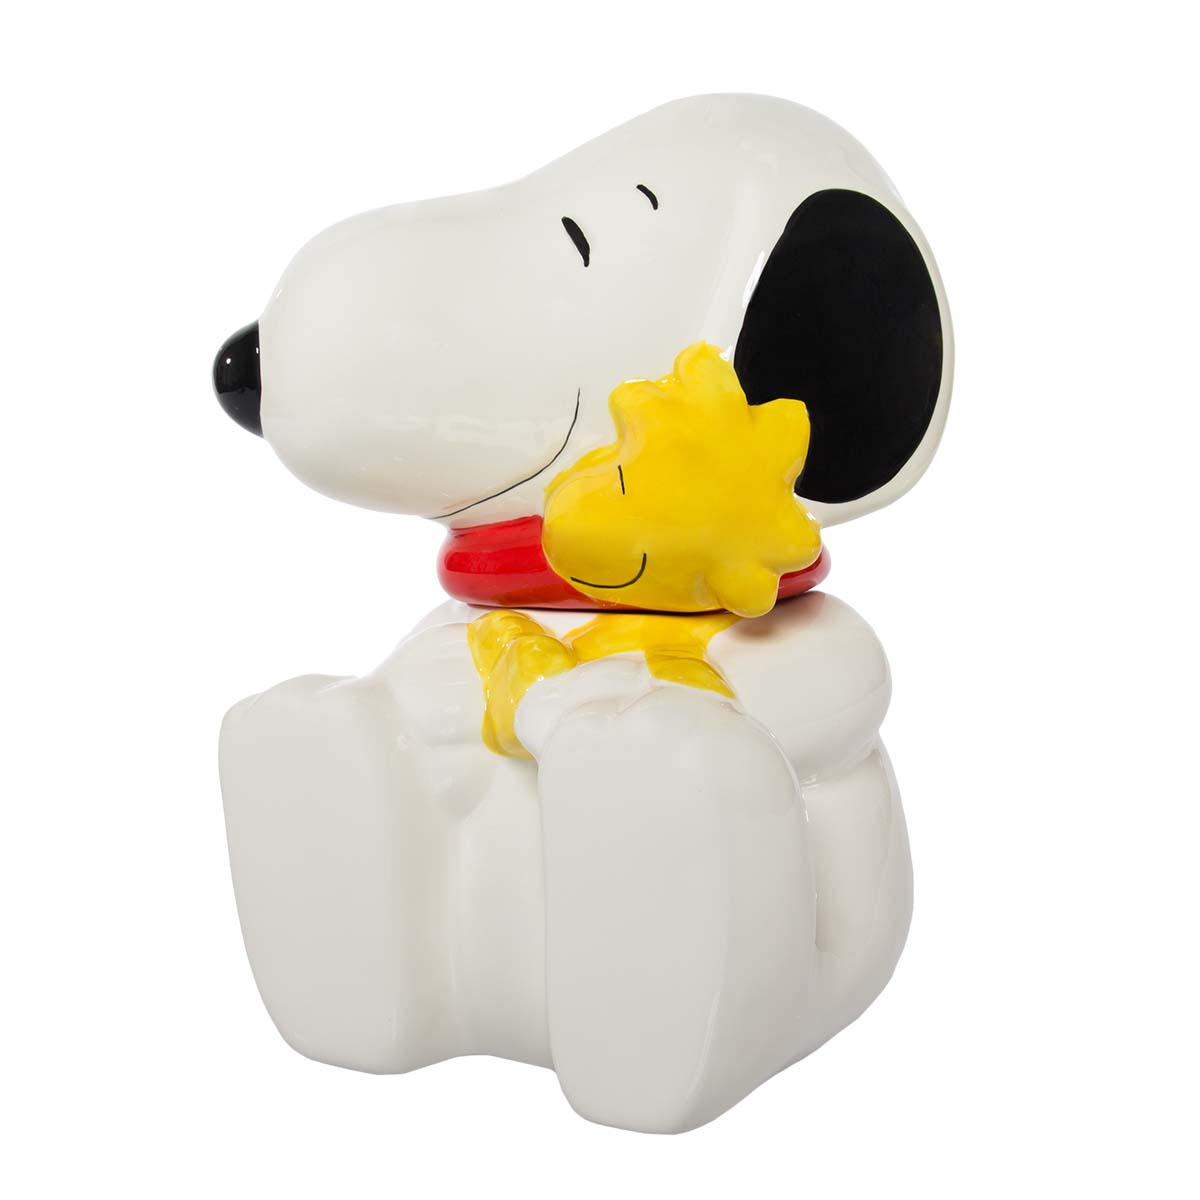 Gibson Peanuts Snoopy & Woodstock Large 10.5� Ceramic Cookie Jar With Lid Decorative Collectibles by